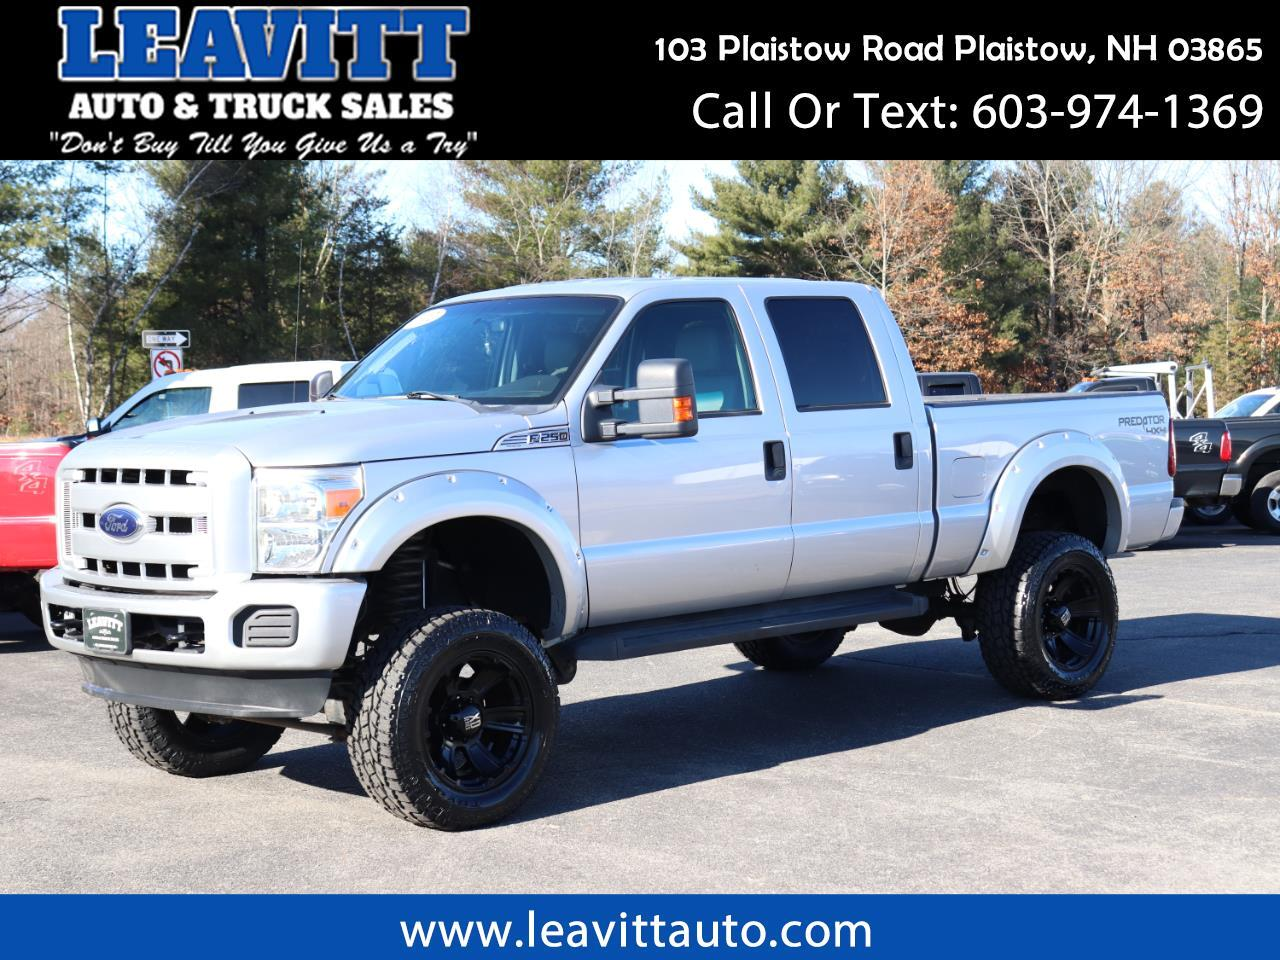 2012 Ford F-250 SD XLT CREW CAB 6.2L LIFTED